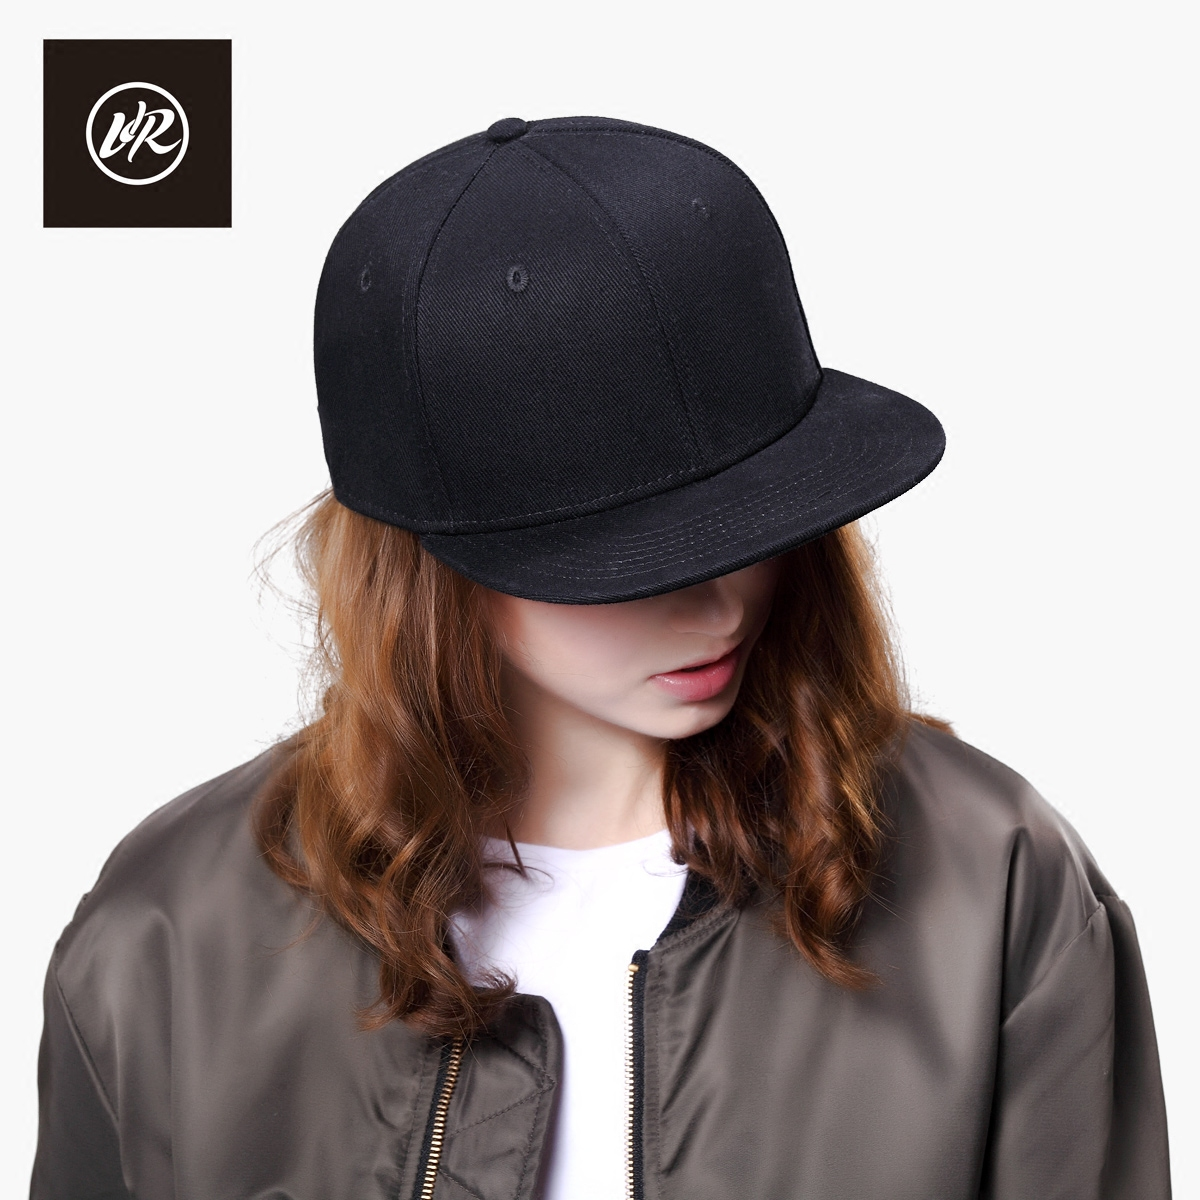 Pre-2015 visrock hip-hop hat cap hat female autumn and winter solid black male korean version of hip-hop cap flat along hat sun hat